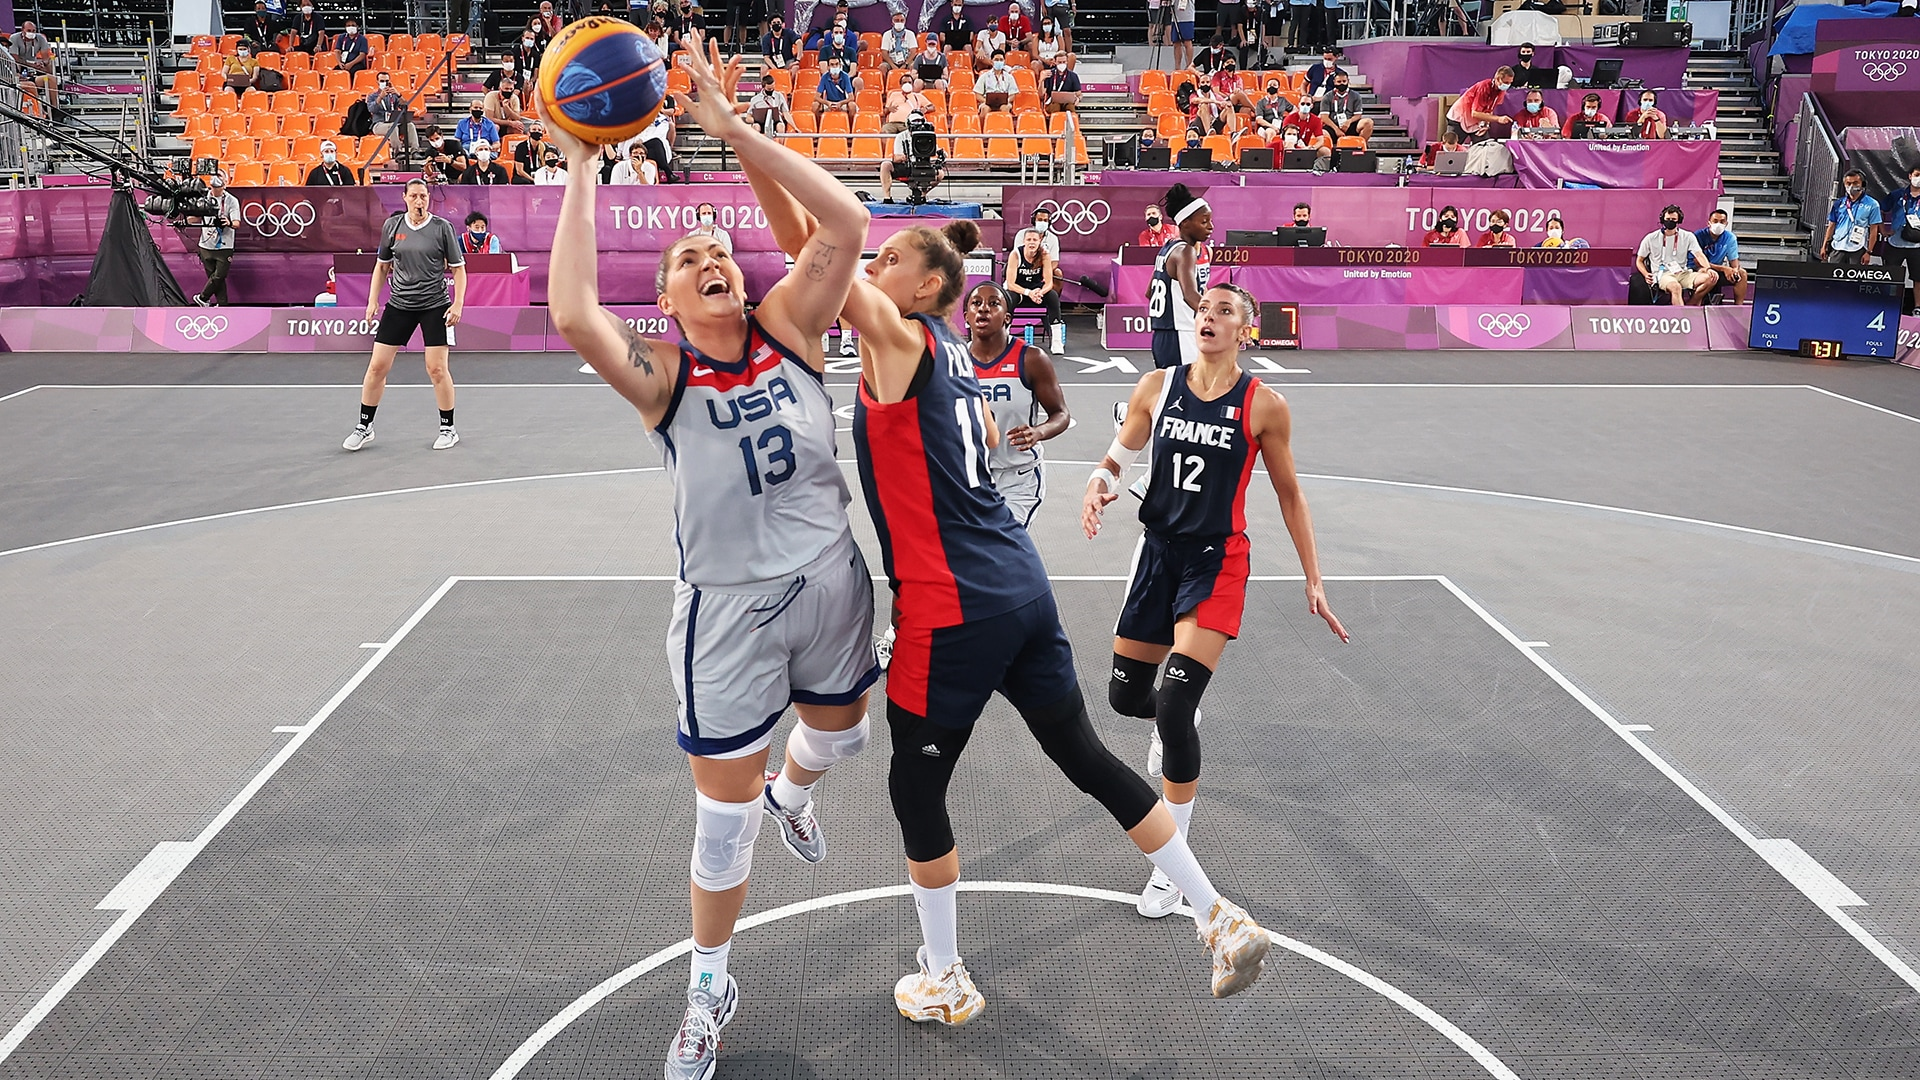 Stephanie Dolson draws a foul against France in the United States' opening match of 3x3 basketball pool play.